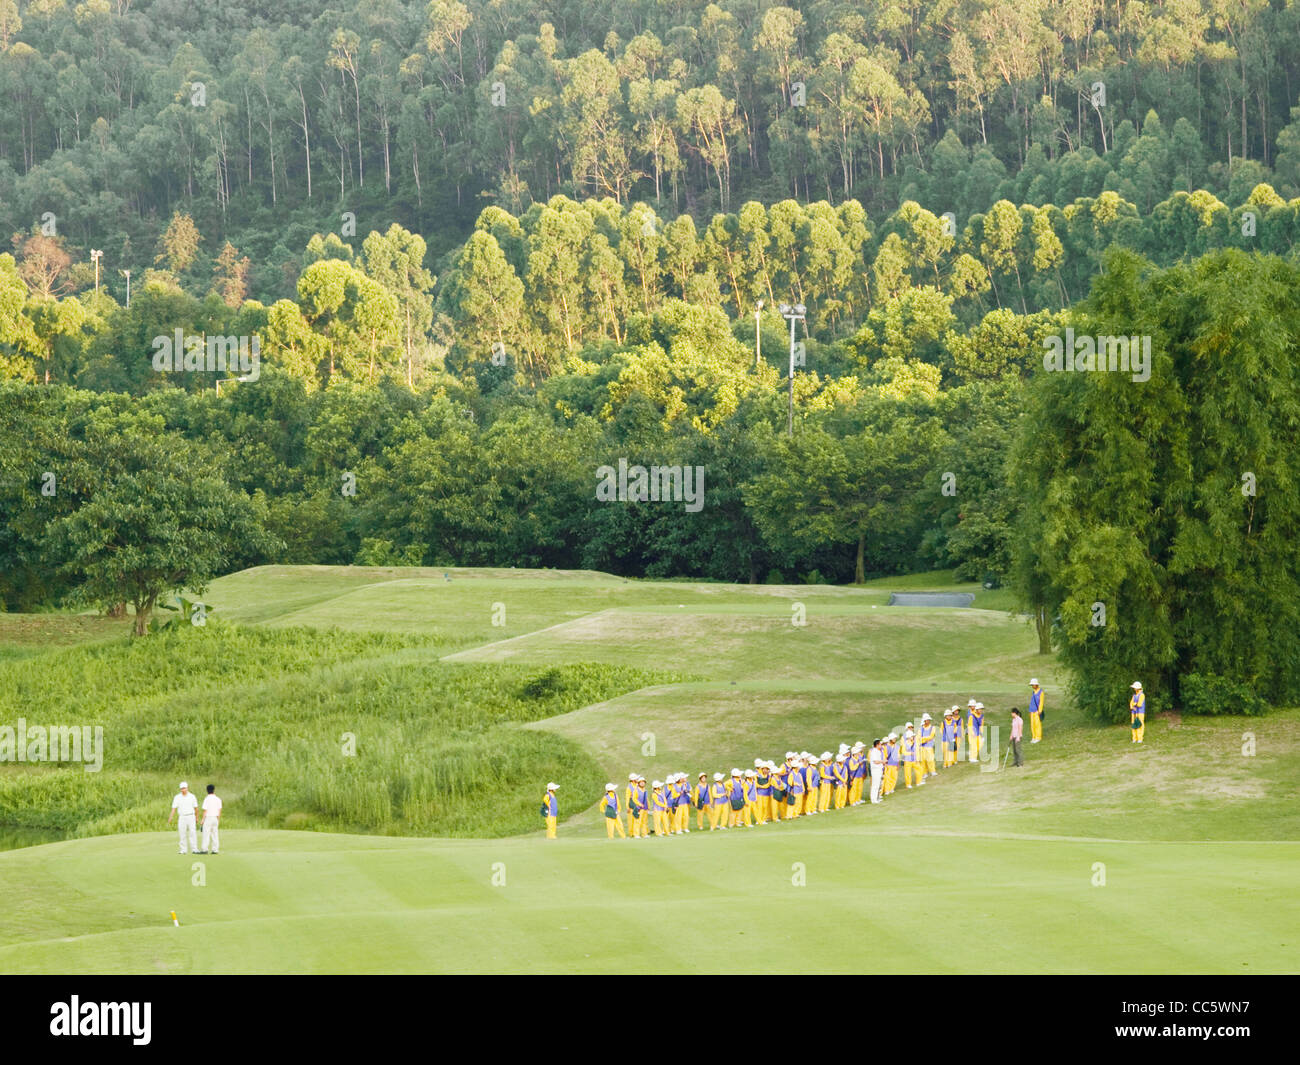 Caddie trainning in the golf course, Sofitel Dongguan Royal Lagoon, Dongguan, Guangdong , China - Stock Image